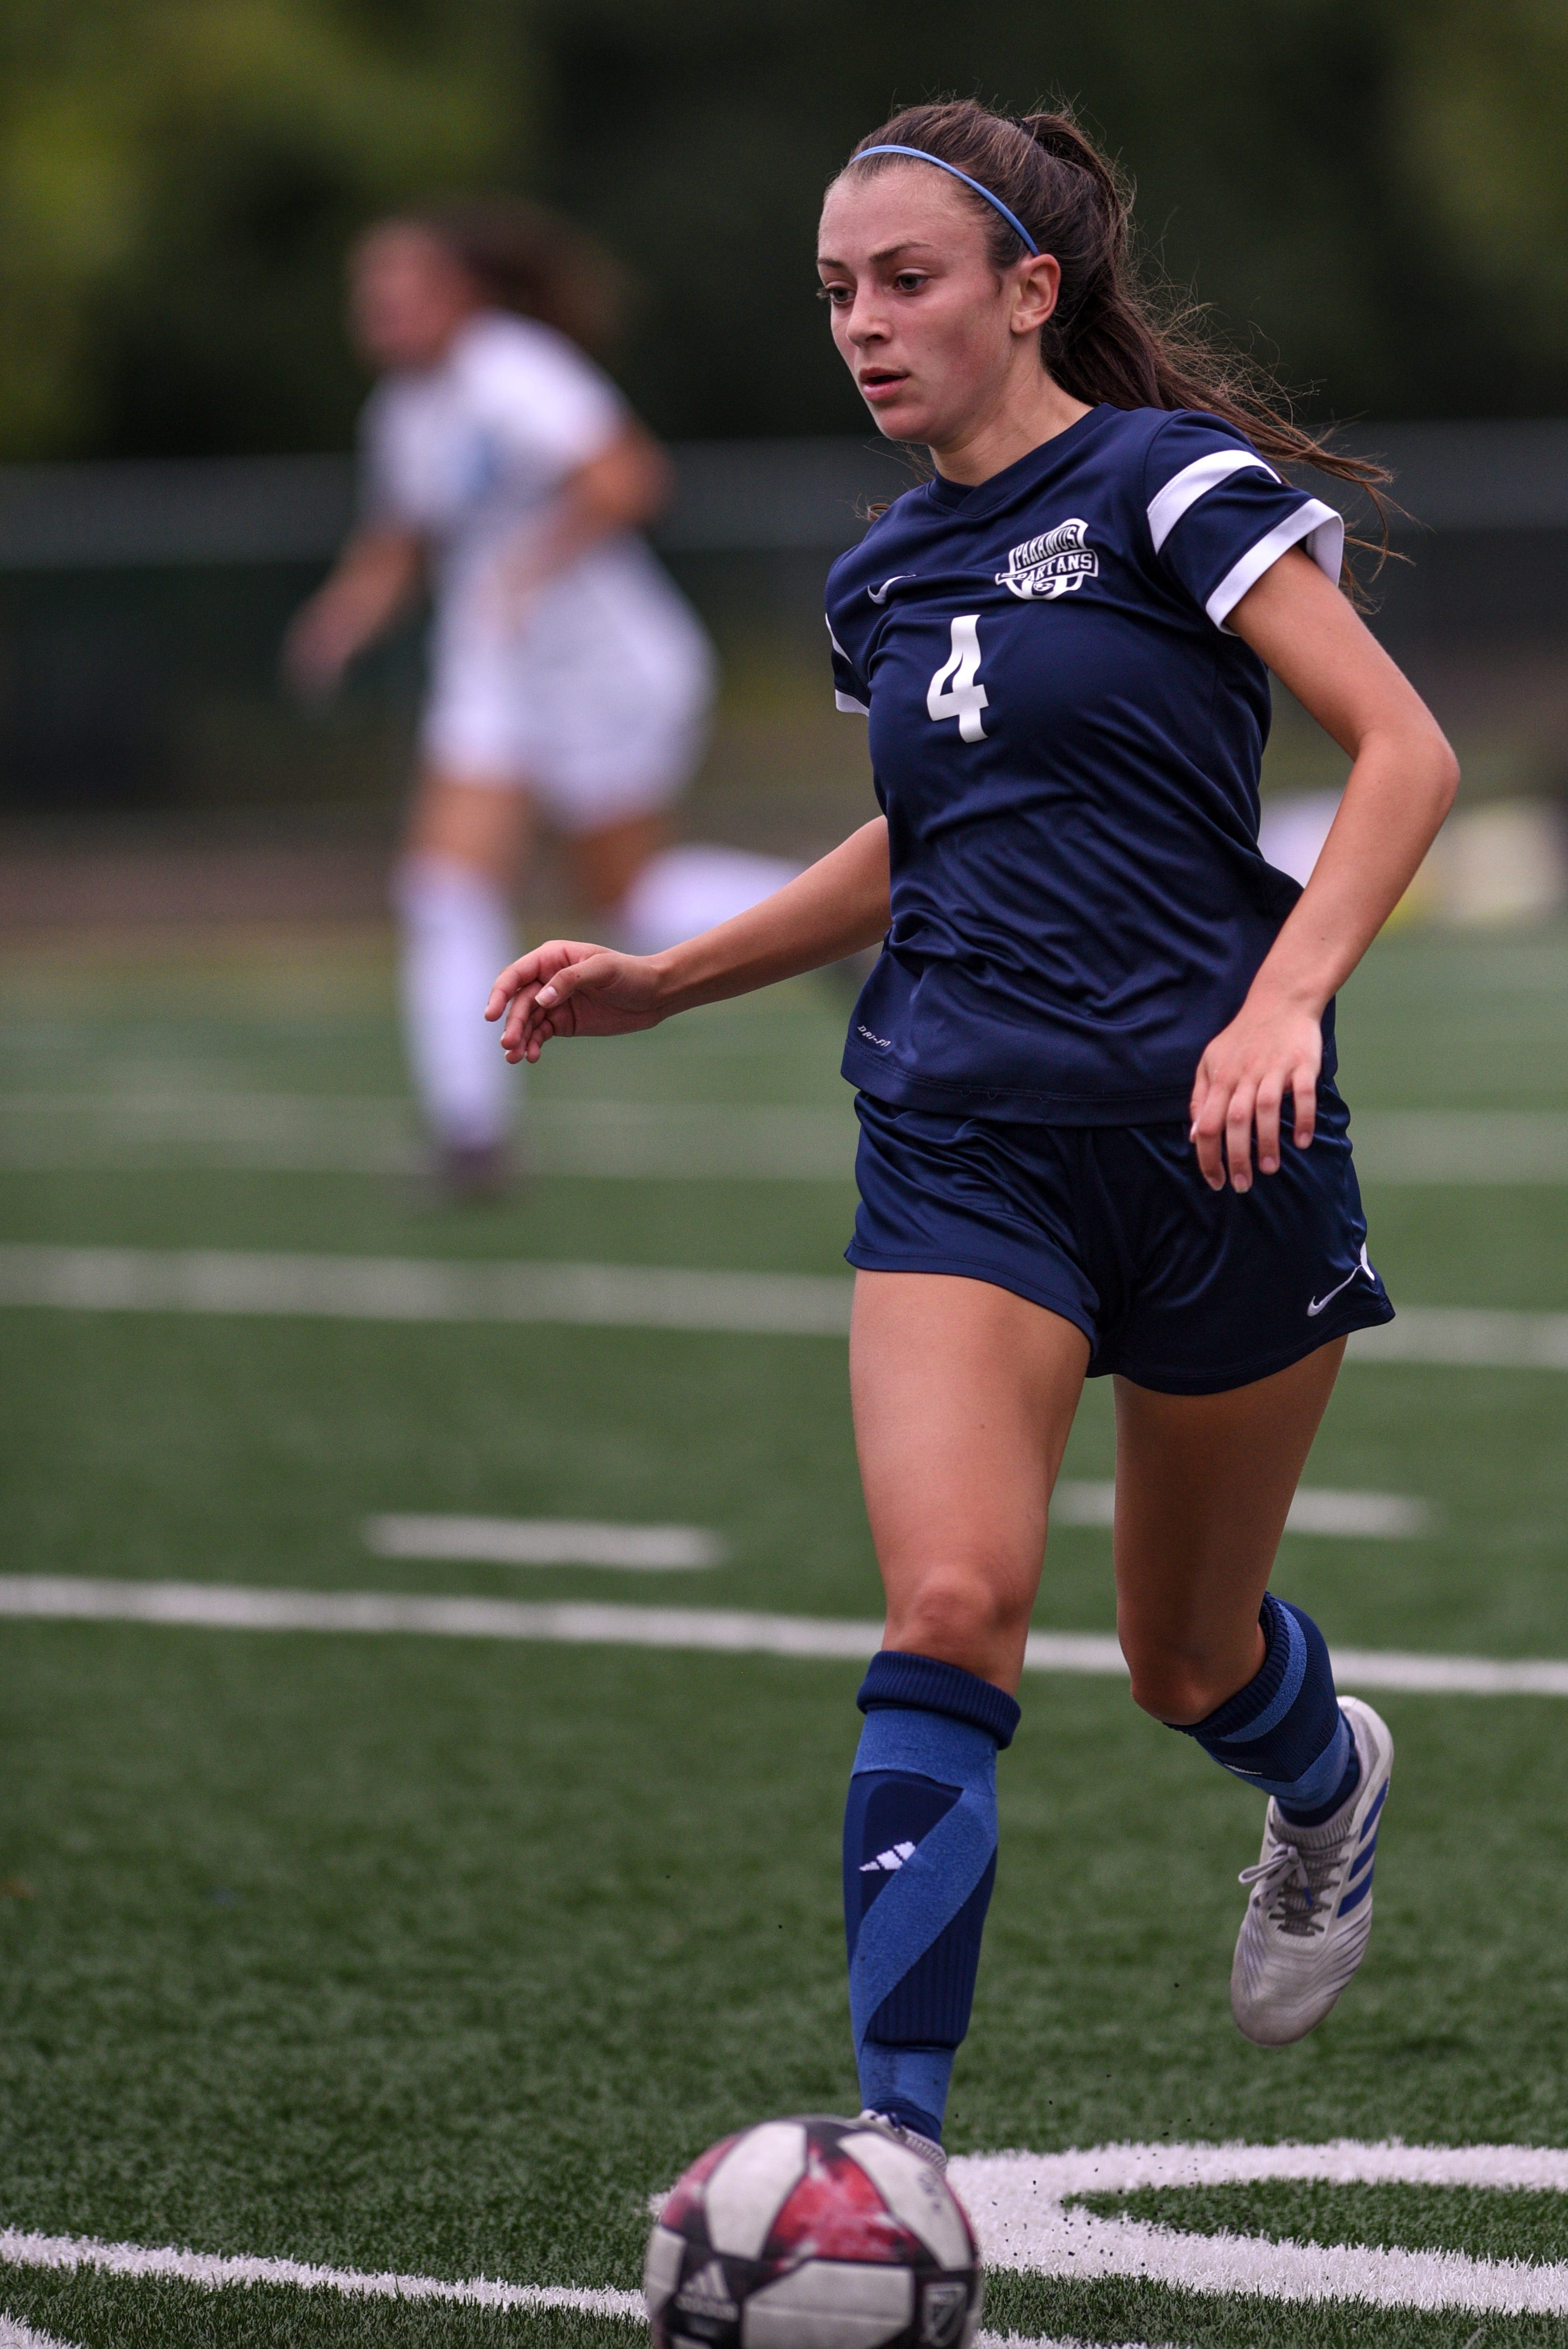 VOTE: North Jersey Soccer Player of the Week